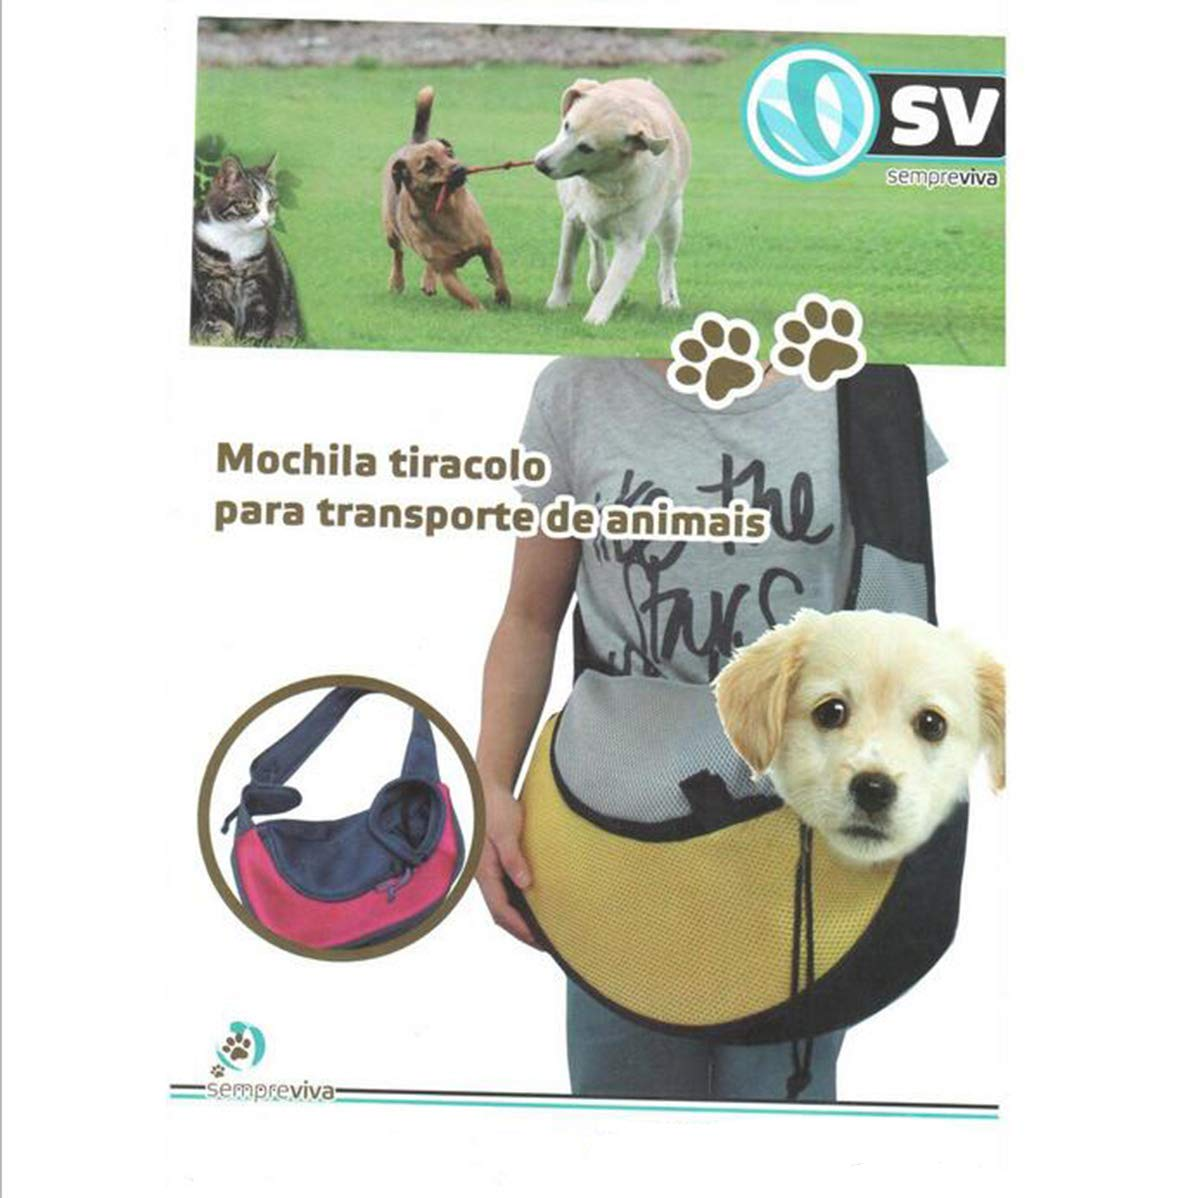 Amazon.com : ODALISQUE Pet Sling Carrier, Breathable Mesh Shoulder Sling Bag for Small Dogs Cats : Pet Supplies